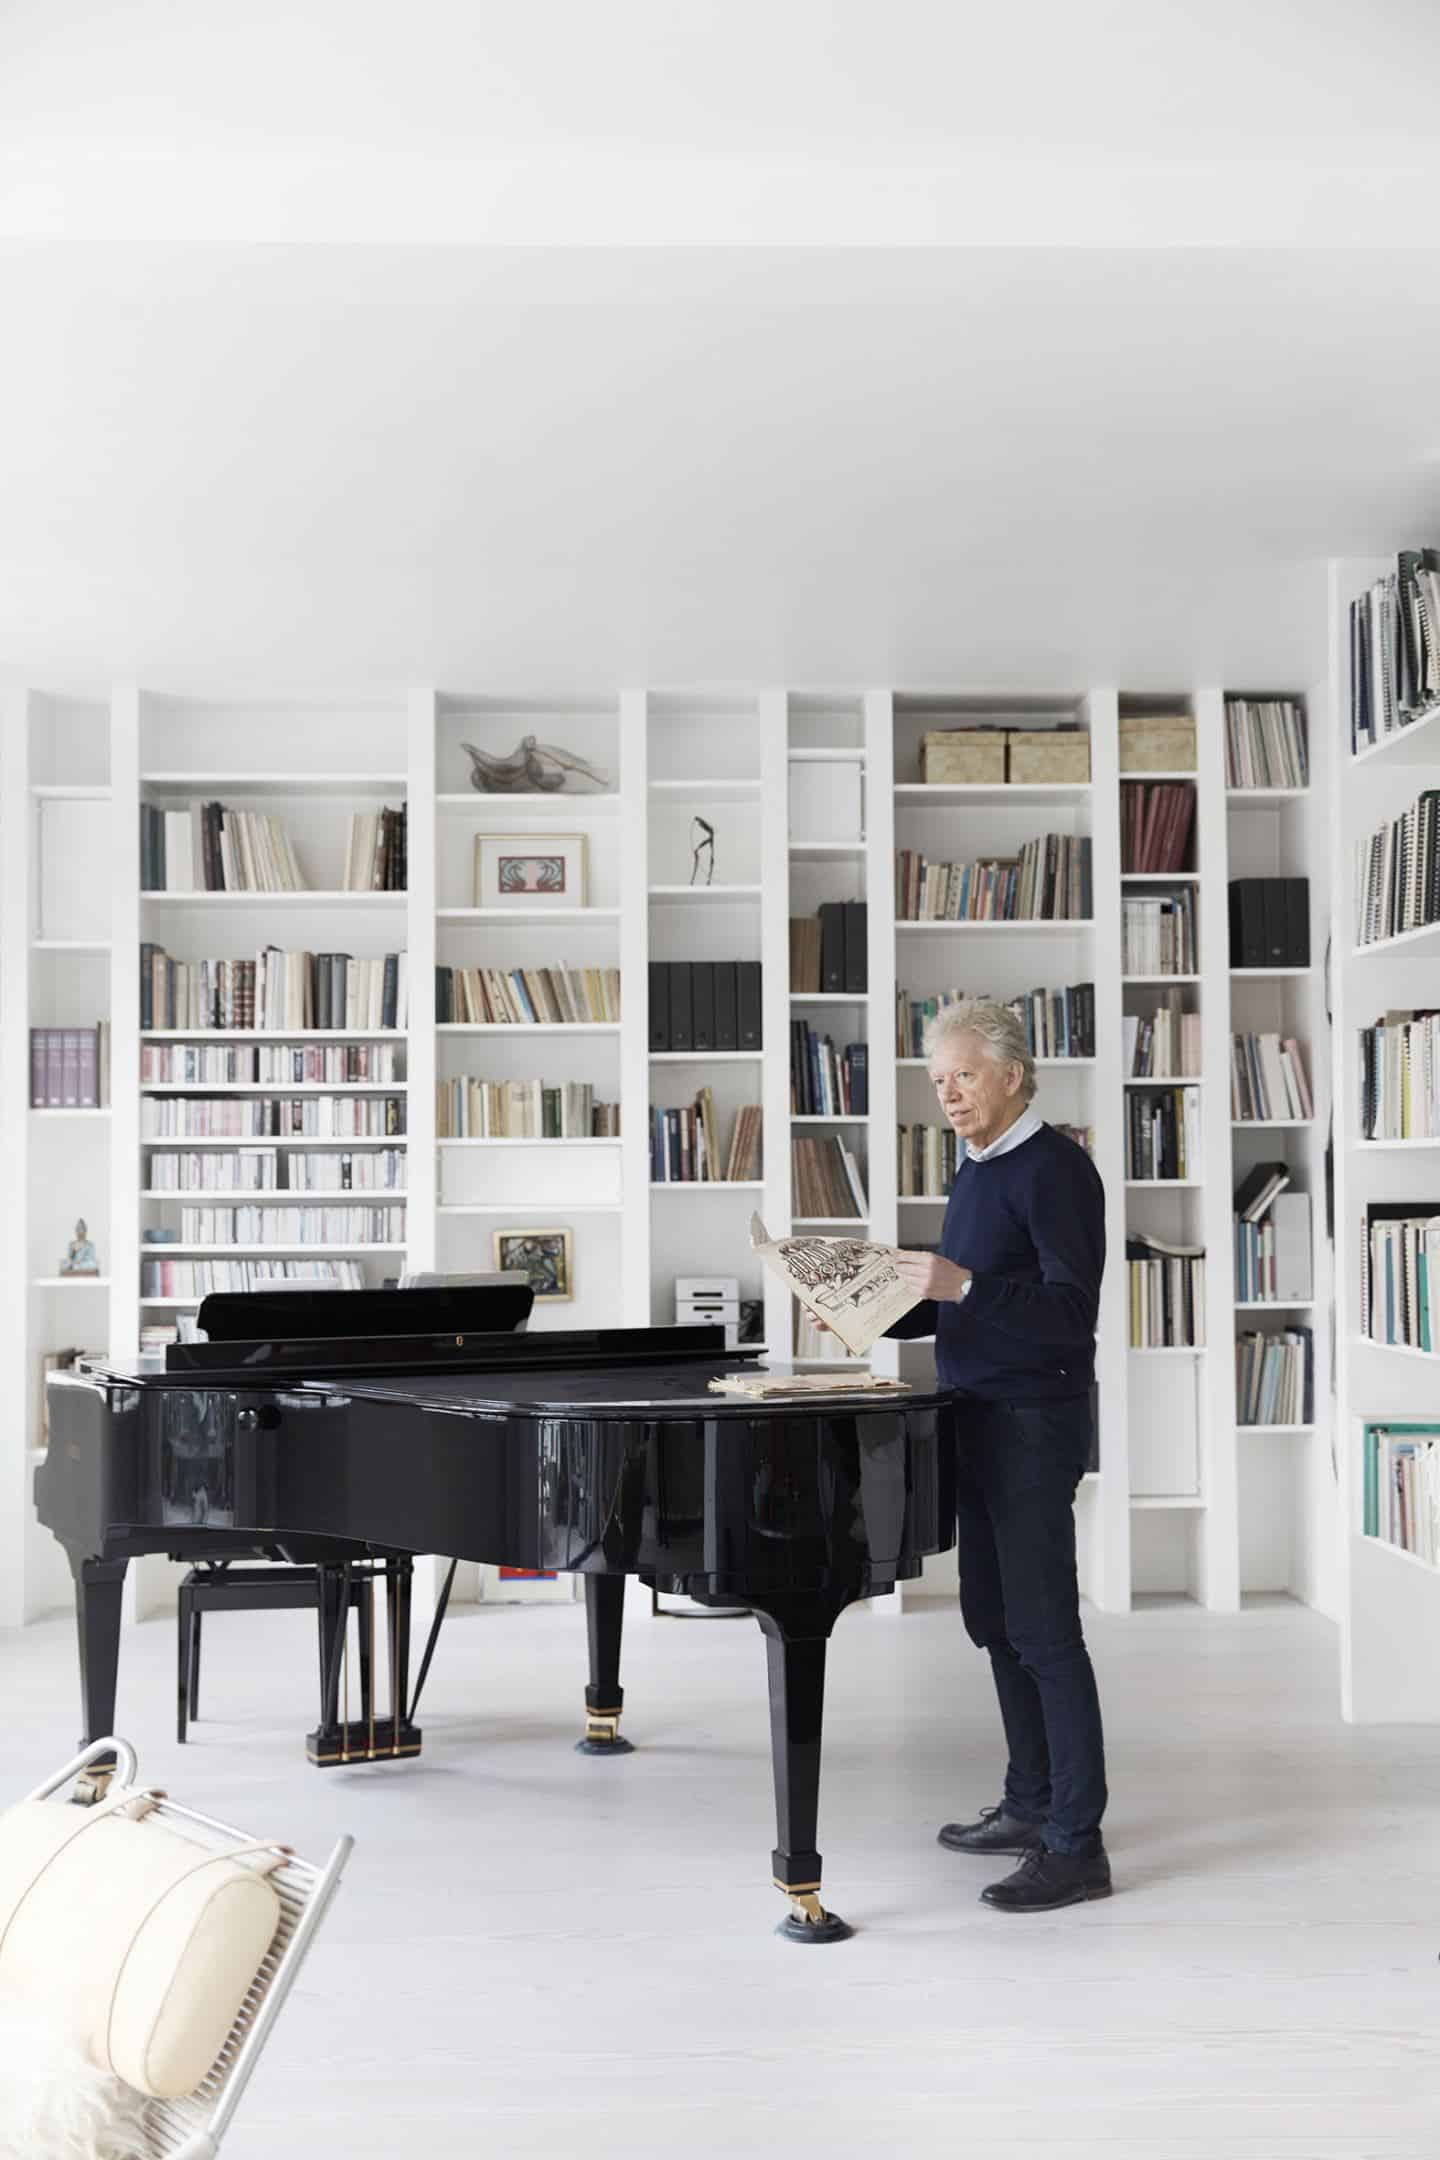 Mogens Dahl, husband of Vipp Owner Jette Egelund stood at a concert piano in their converted factory home